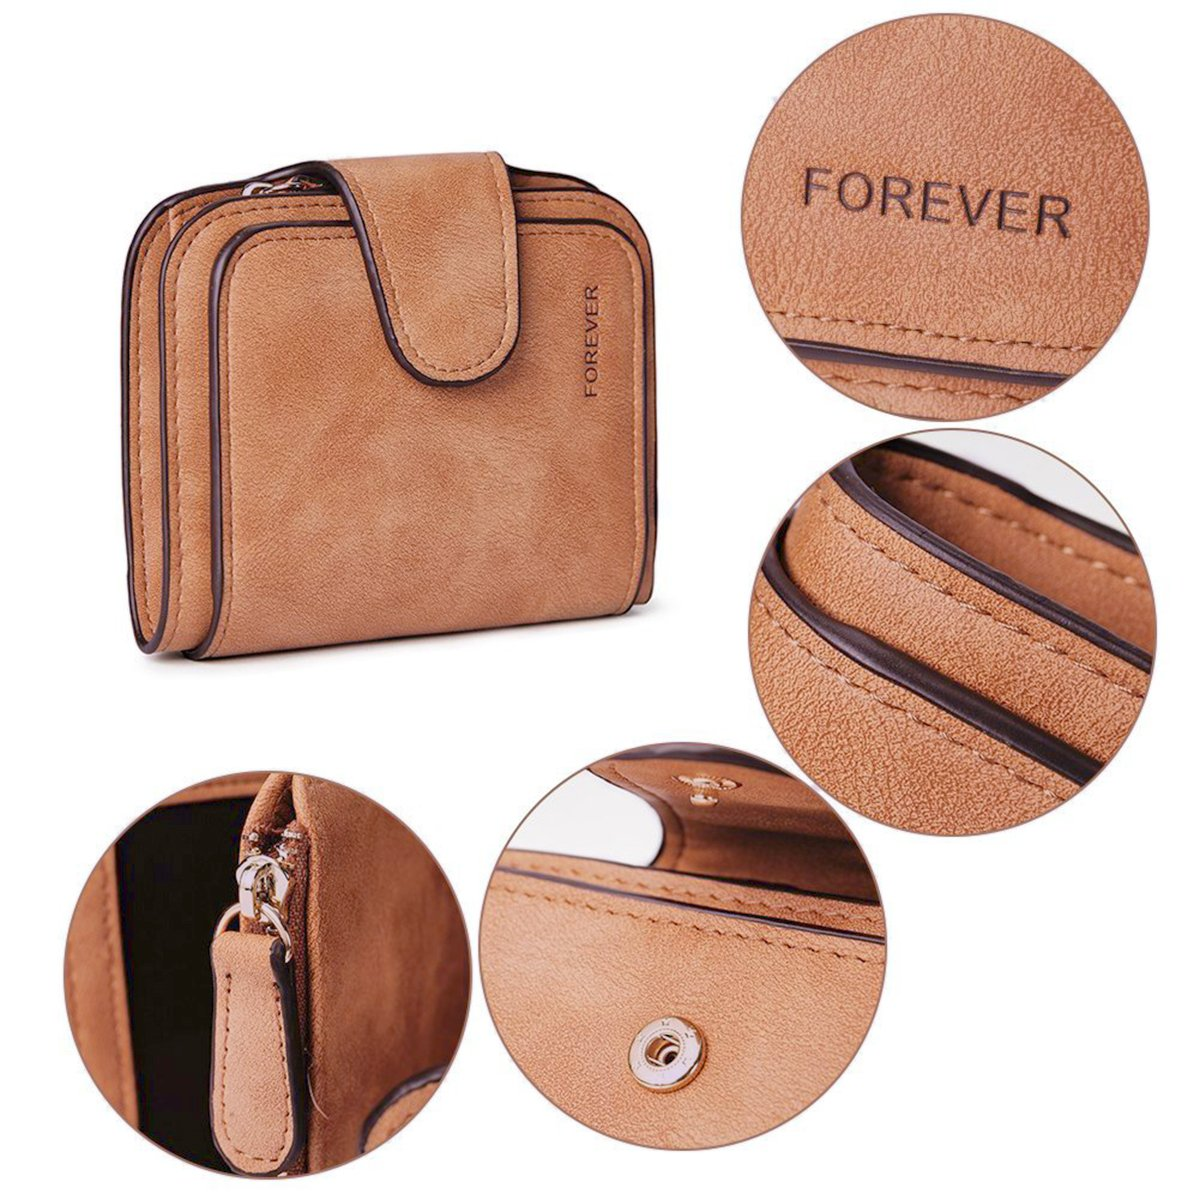 Wallet for Women Leather Clutch Short Purse Ladies Credit Card Holder Organizer with Zip Pocket - Brown by EUGO (Image #3)